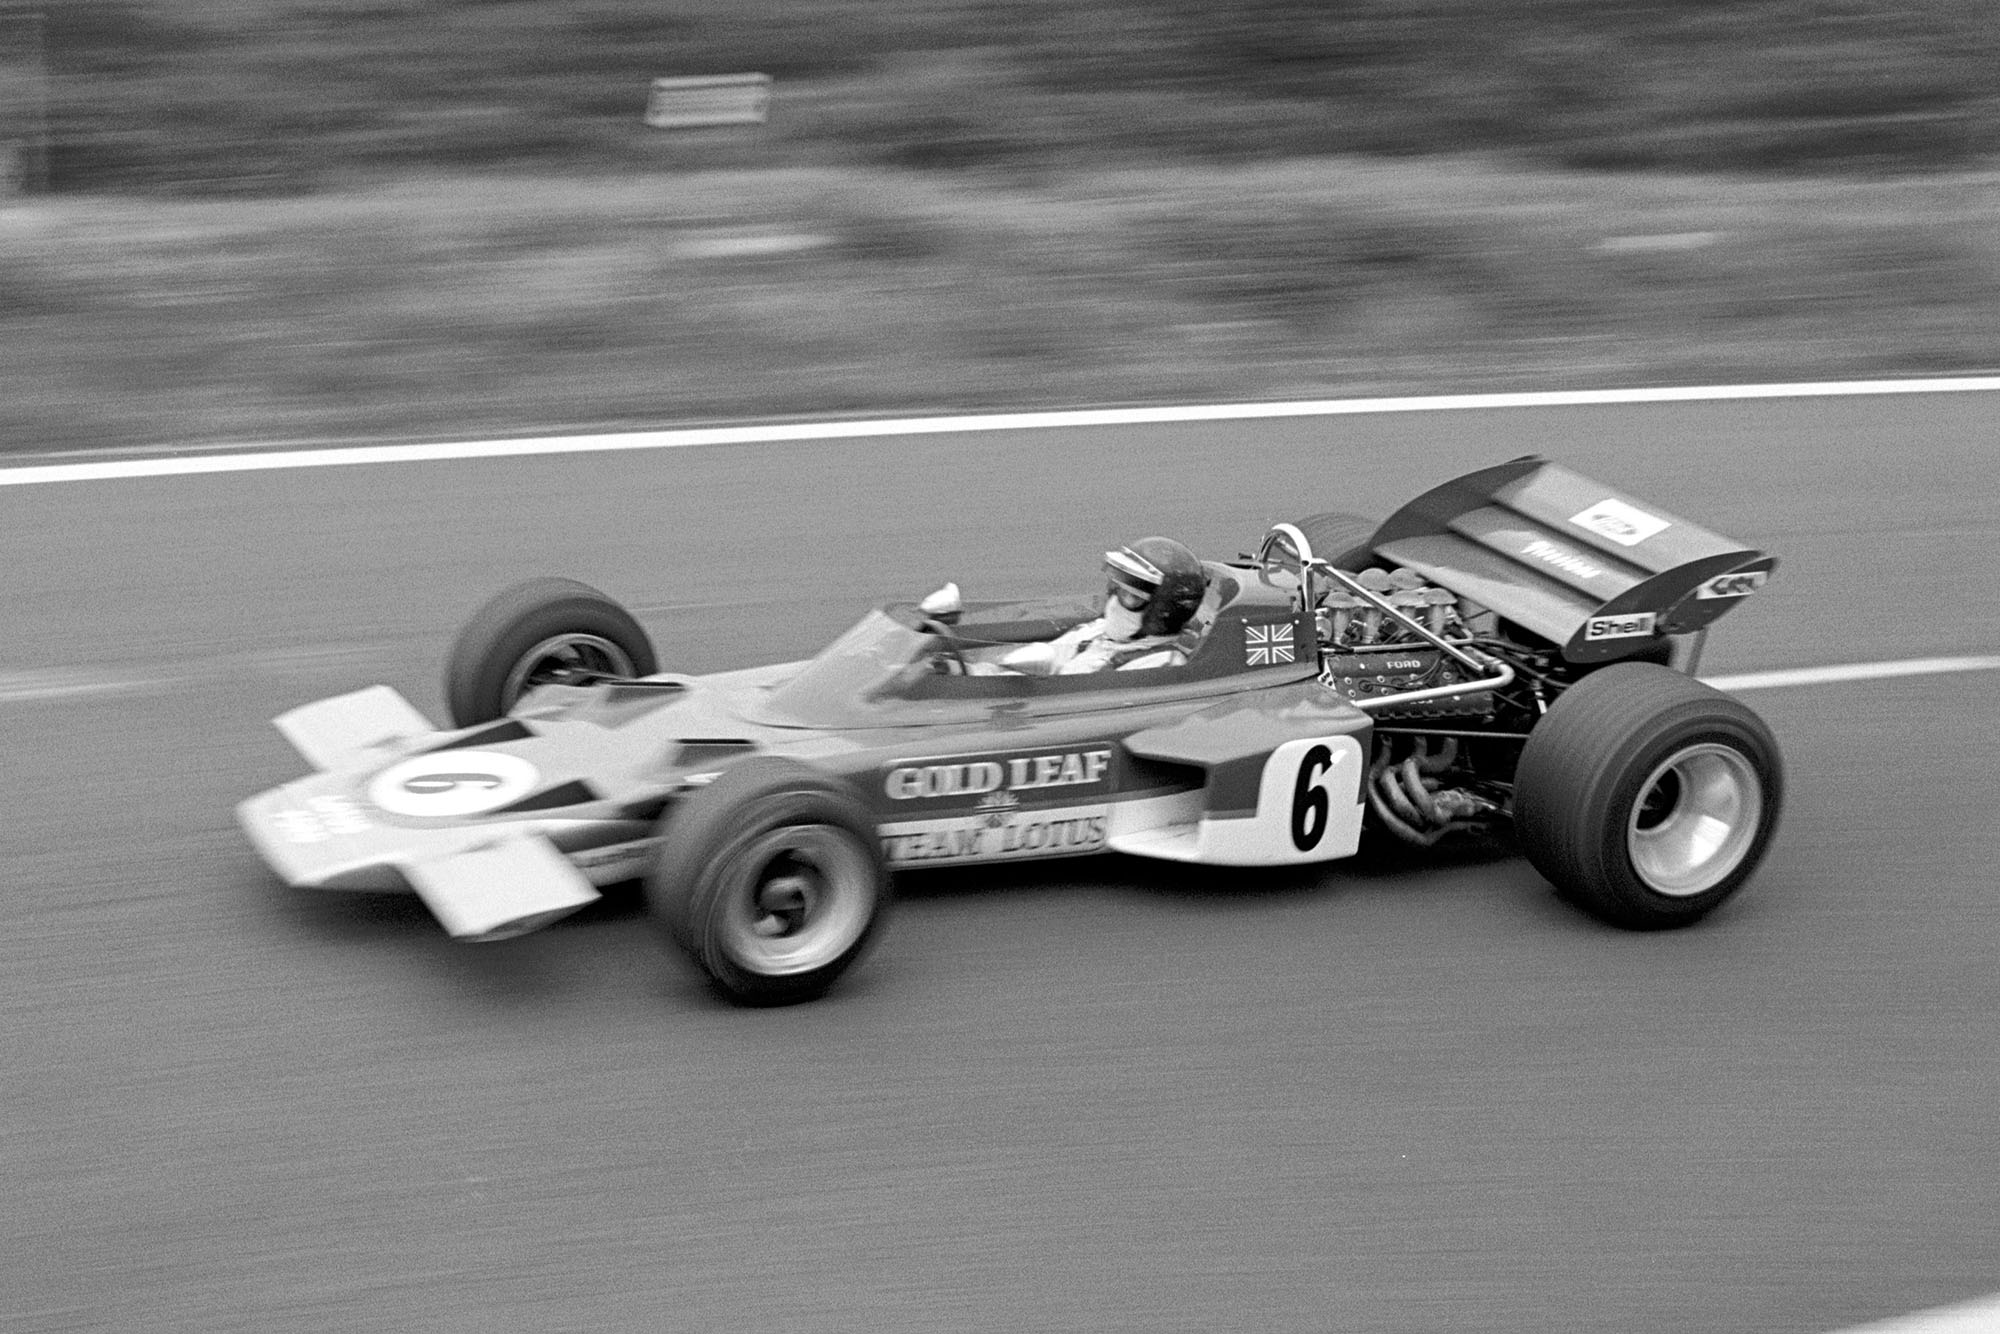 Jochen RIndt driving for Lotus at the 1970 French Grand Prix.